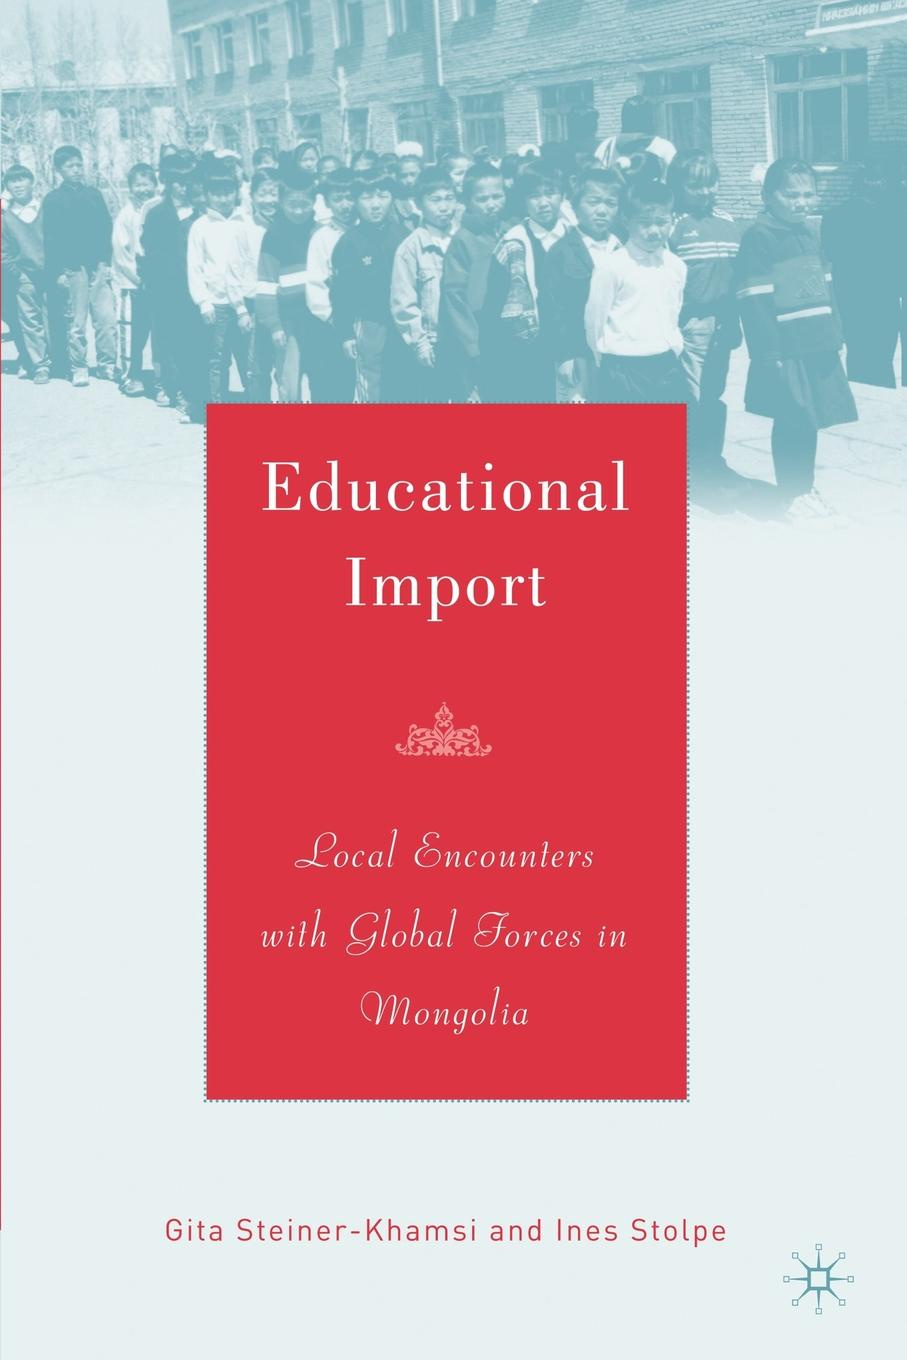 Gita Steiner-Khamsi, Ines Stolpe Educational Import. Local Encounters with Global Forces in Mongolia oyuntuya shagdarsuren tackling isolation in rural mongolia